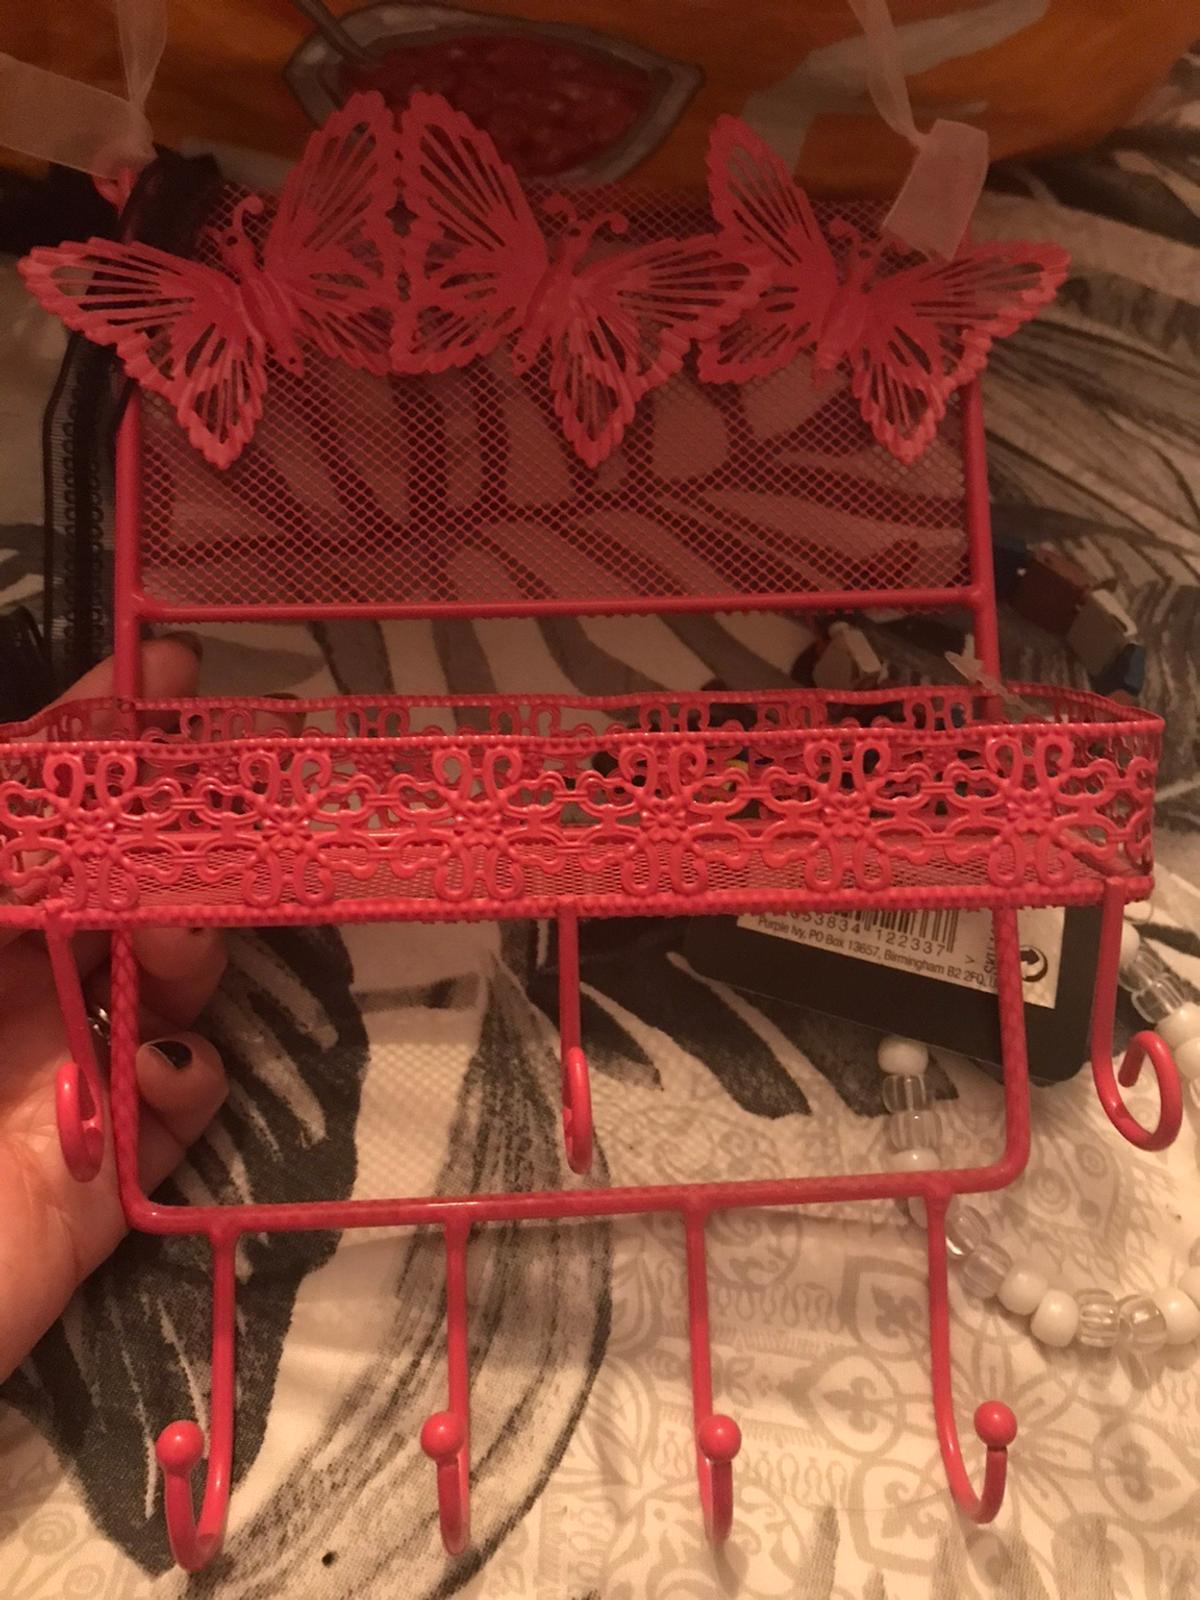 Jewellery trinket holder. Basket for bits and hooks for necklaces. Butterflies Beautiful